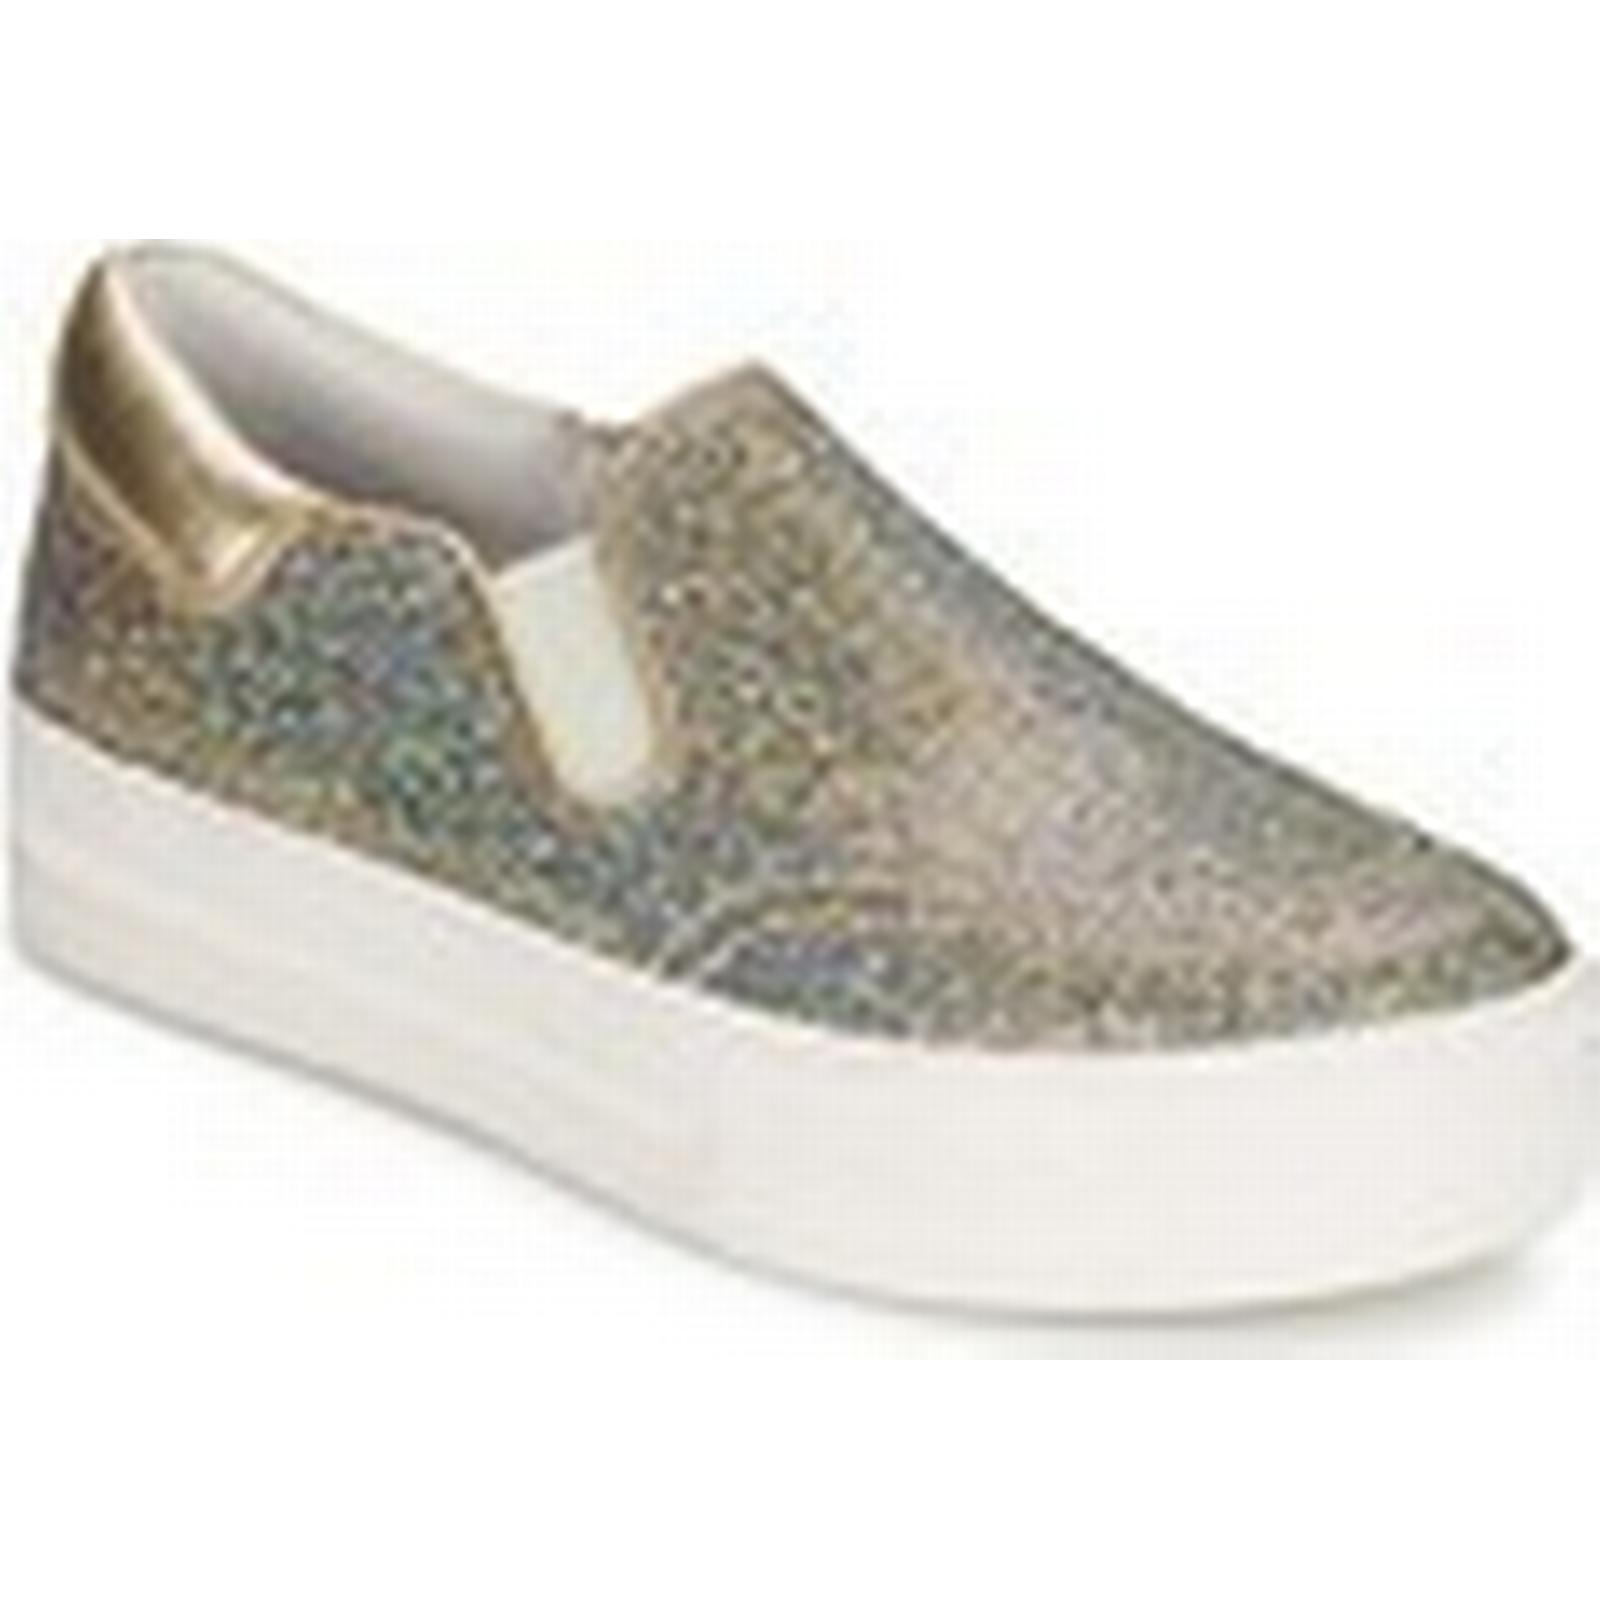 Ash Gold  JAM  women's Slip-ons (Shoes) in Gold Ash 3f3252